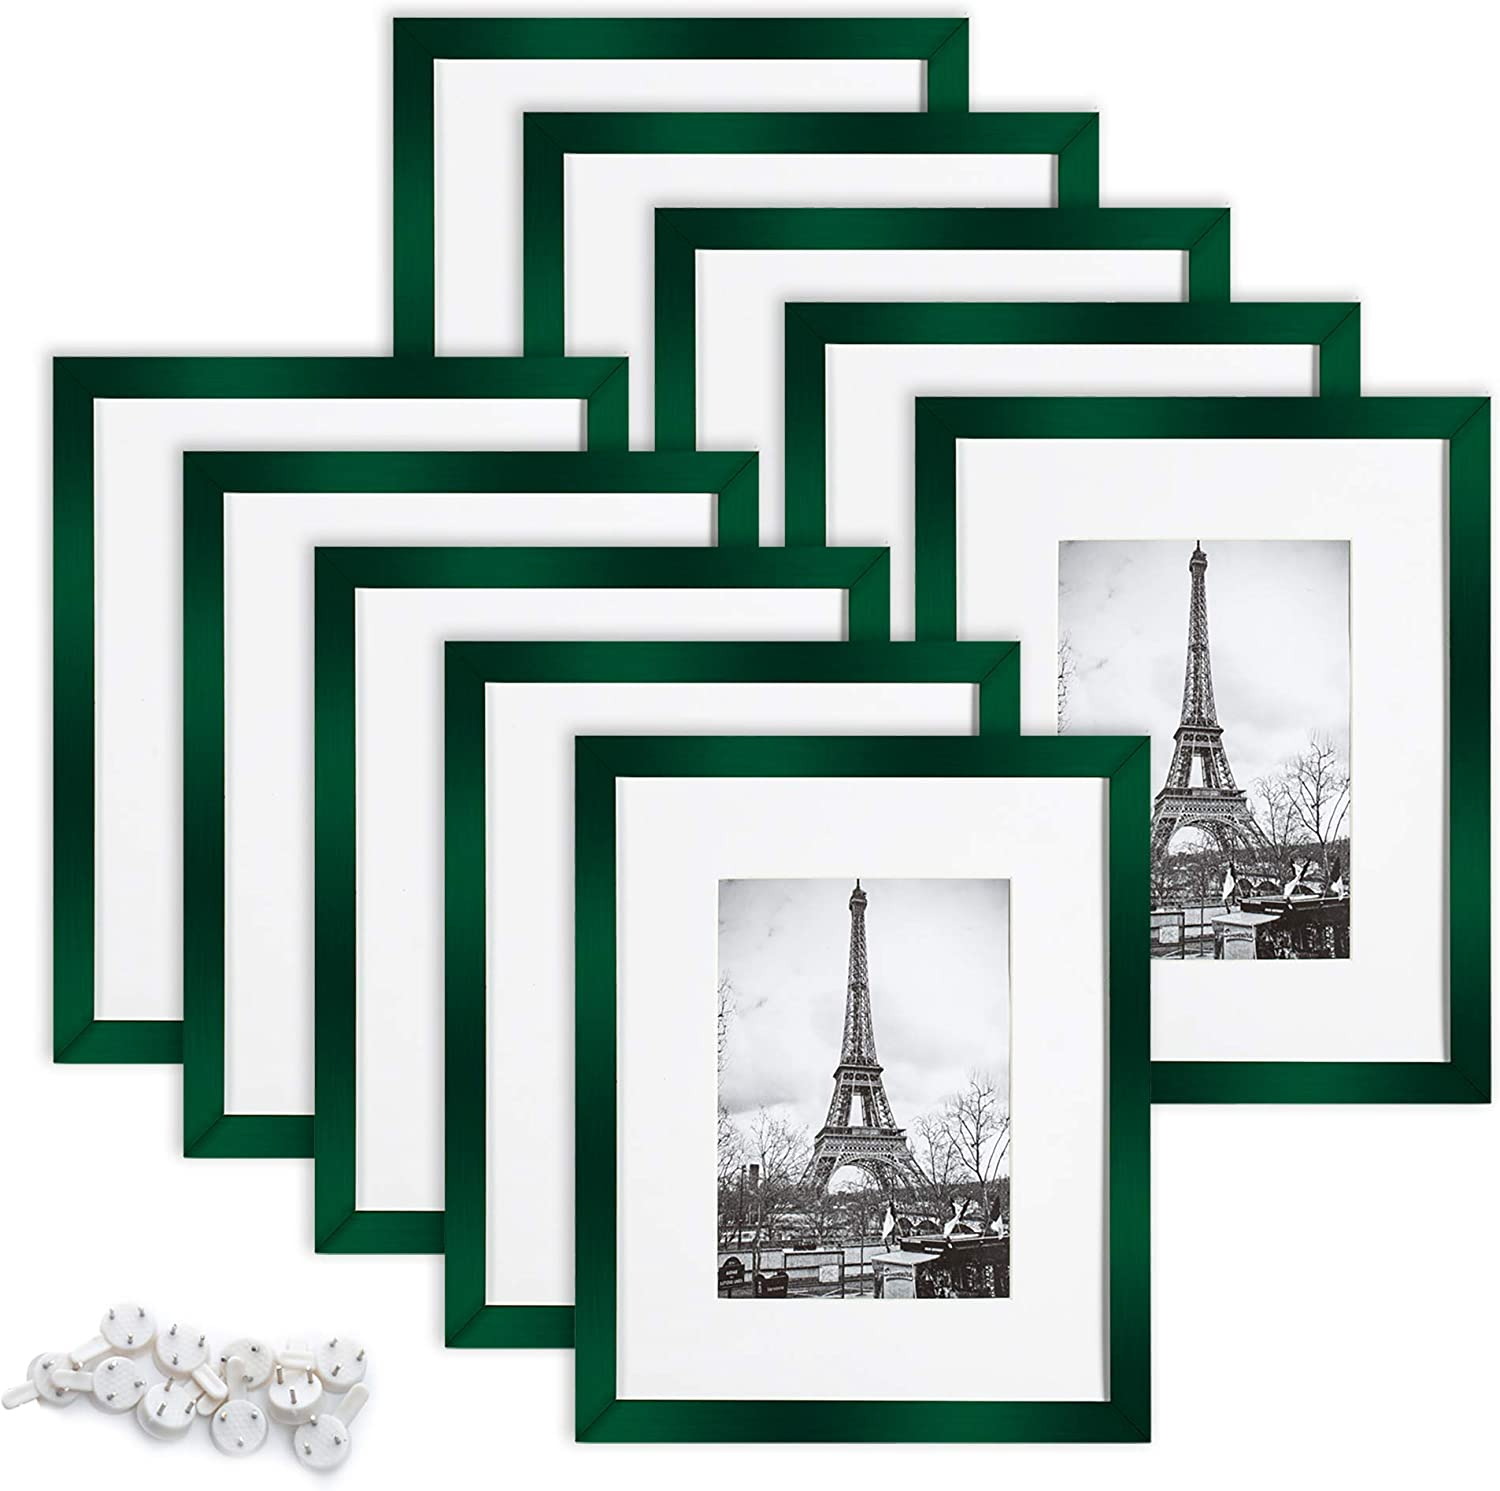 upsimples 8x10 Picture Frame Set of 10,Display Pictures 5x7 with Mat or 8x10 Without Mat,Multi Photo Frames Collage for Wall or Tabletop Display,Peacock Green